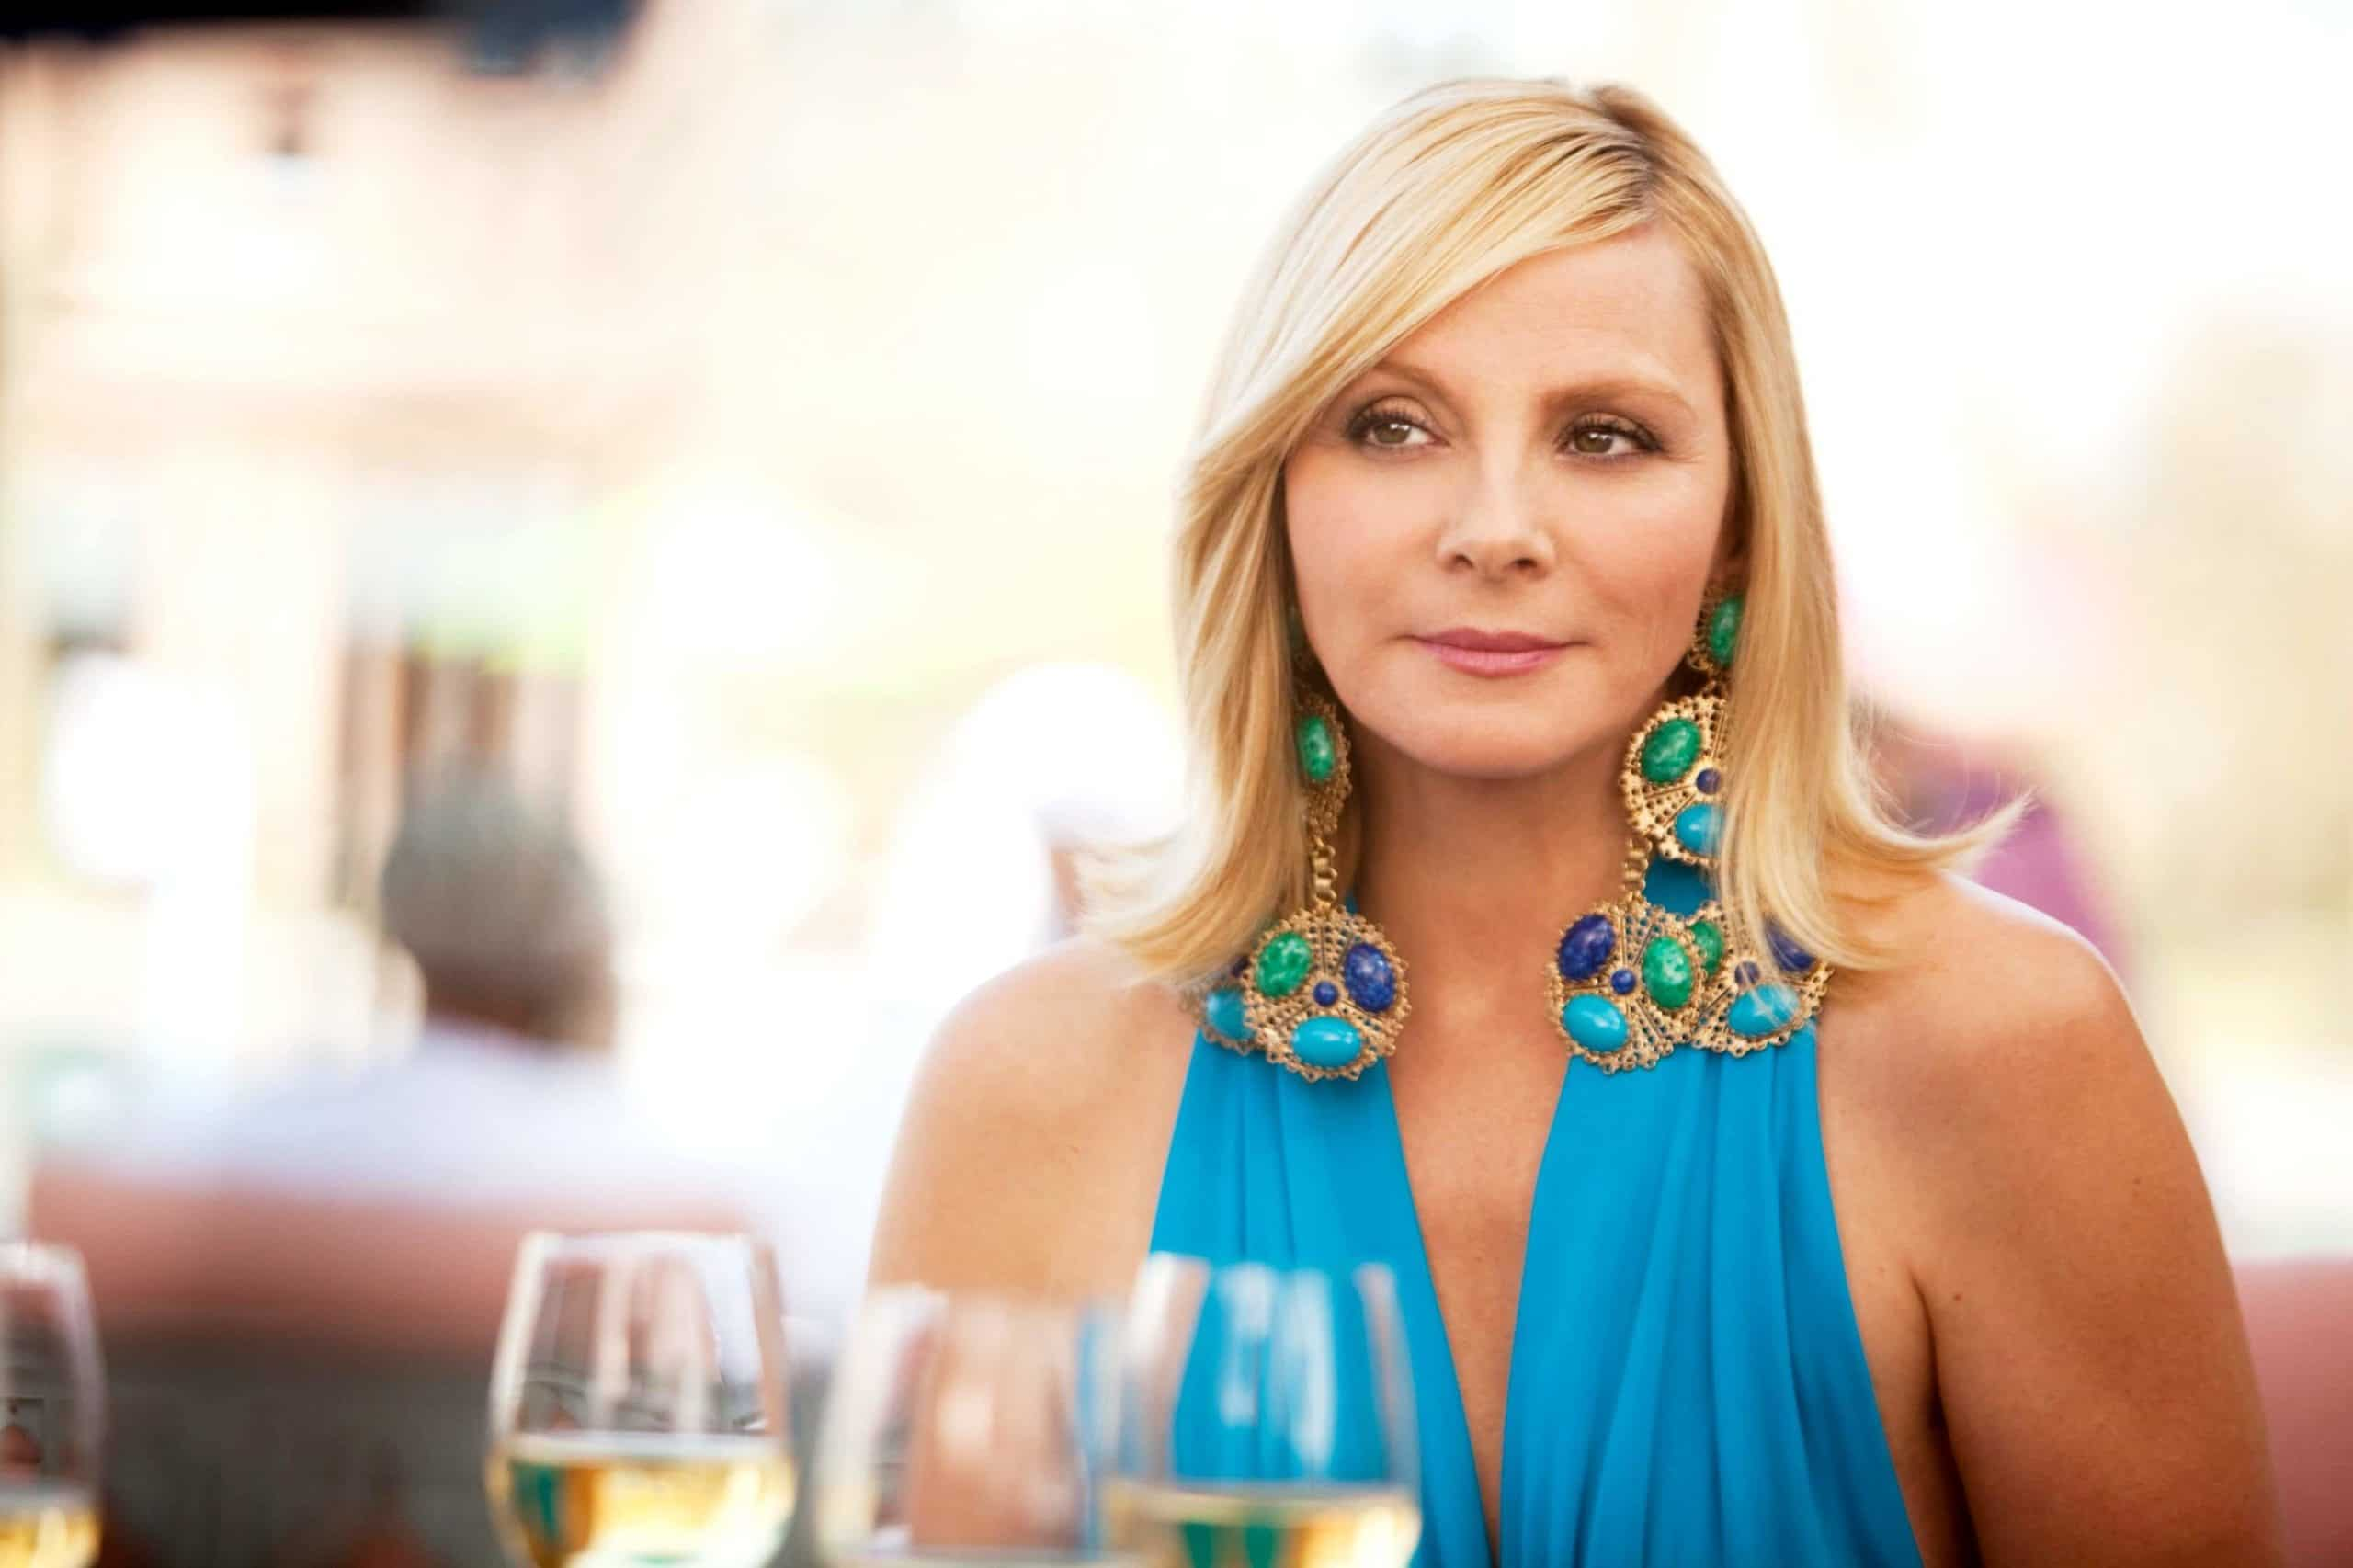 Orignal Sex and the City star Kim Cattrall won't be reprising her role as Samantha Jones in the revival series, And Just Like That